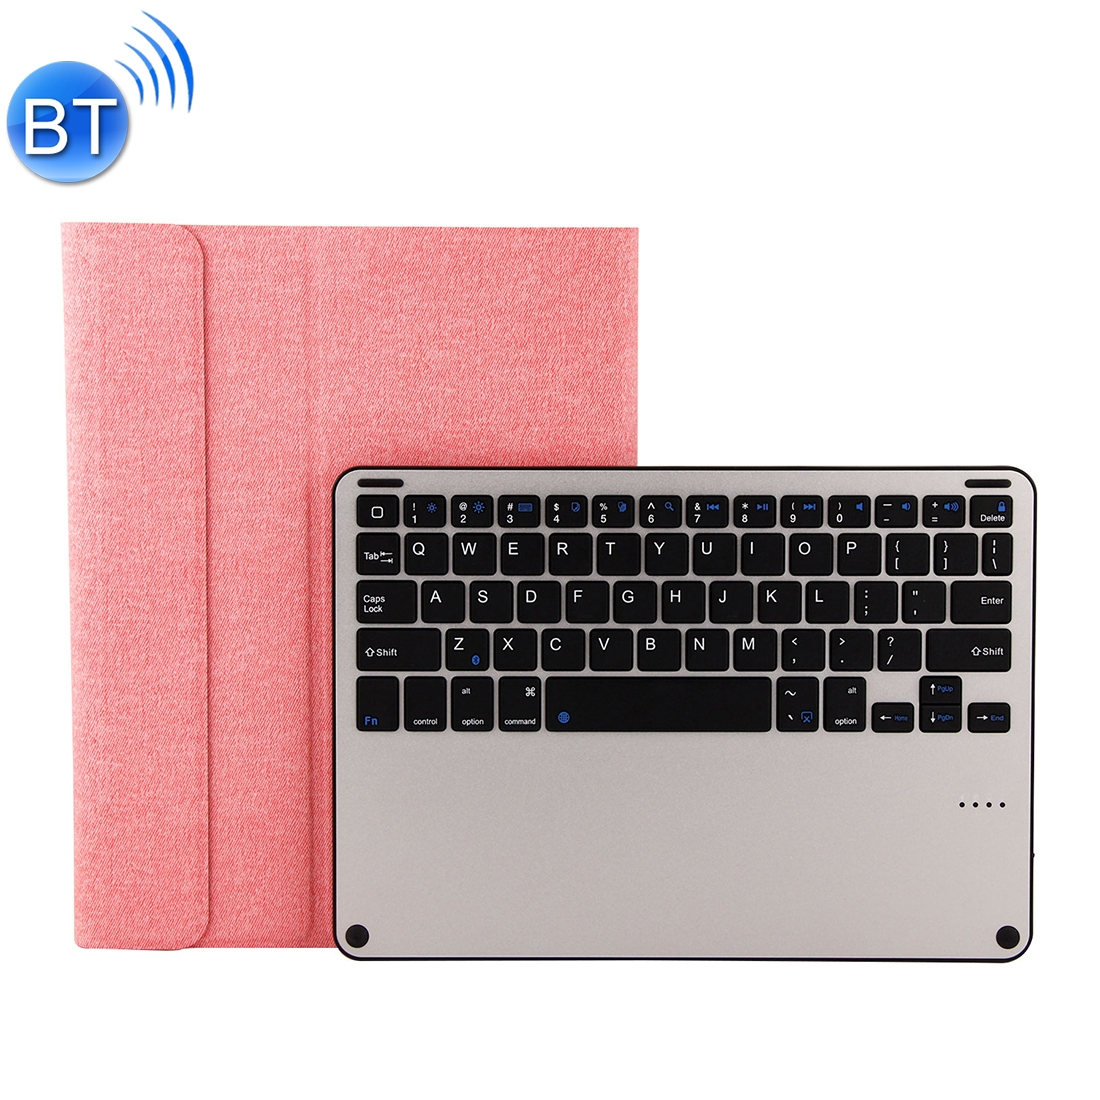 iPad Air 2 Case With Keyboard For iPad Air/Air 2/Pro 9.7 (Pink)